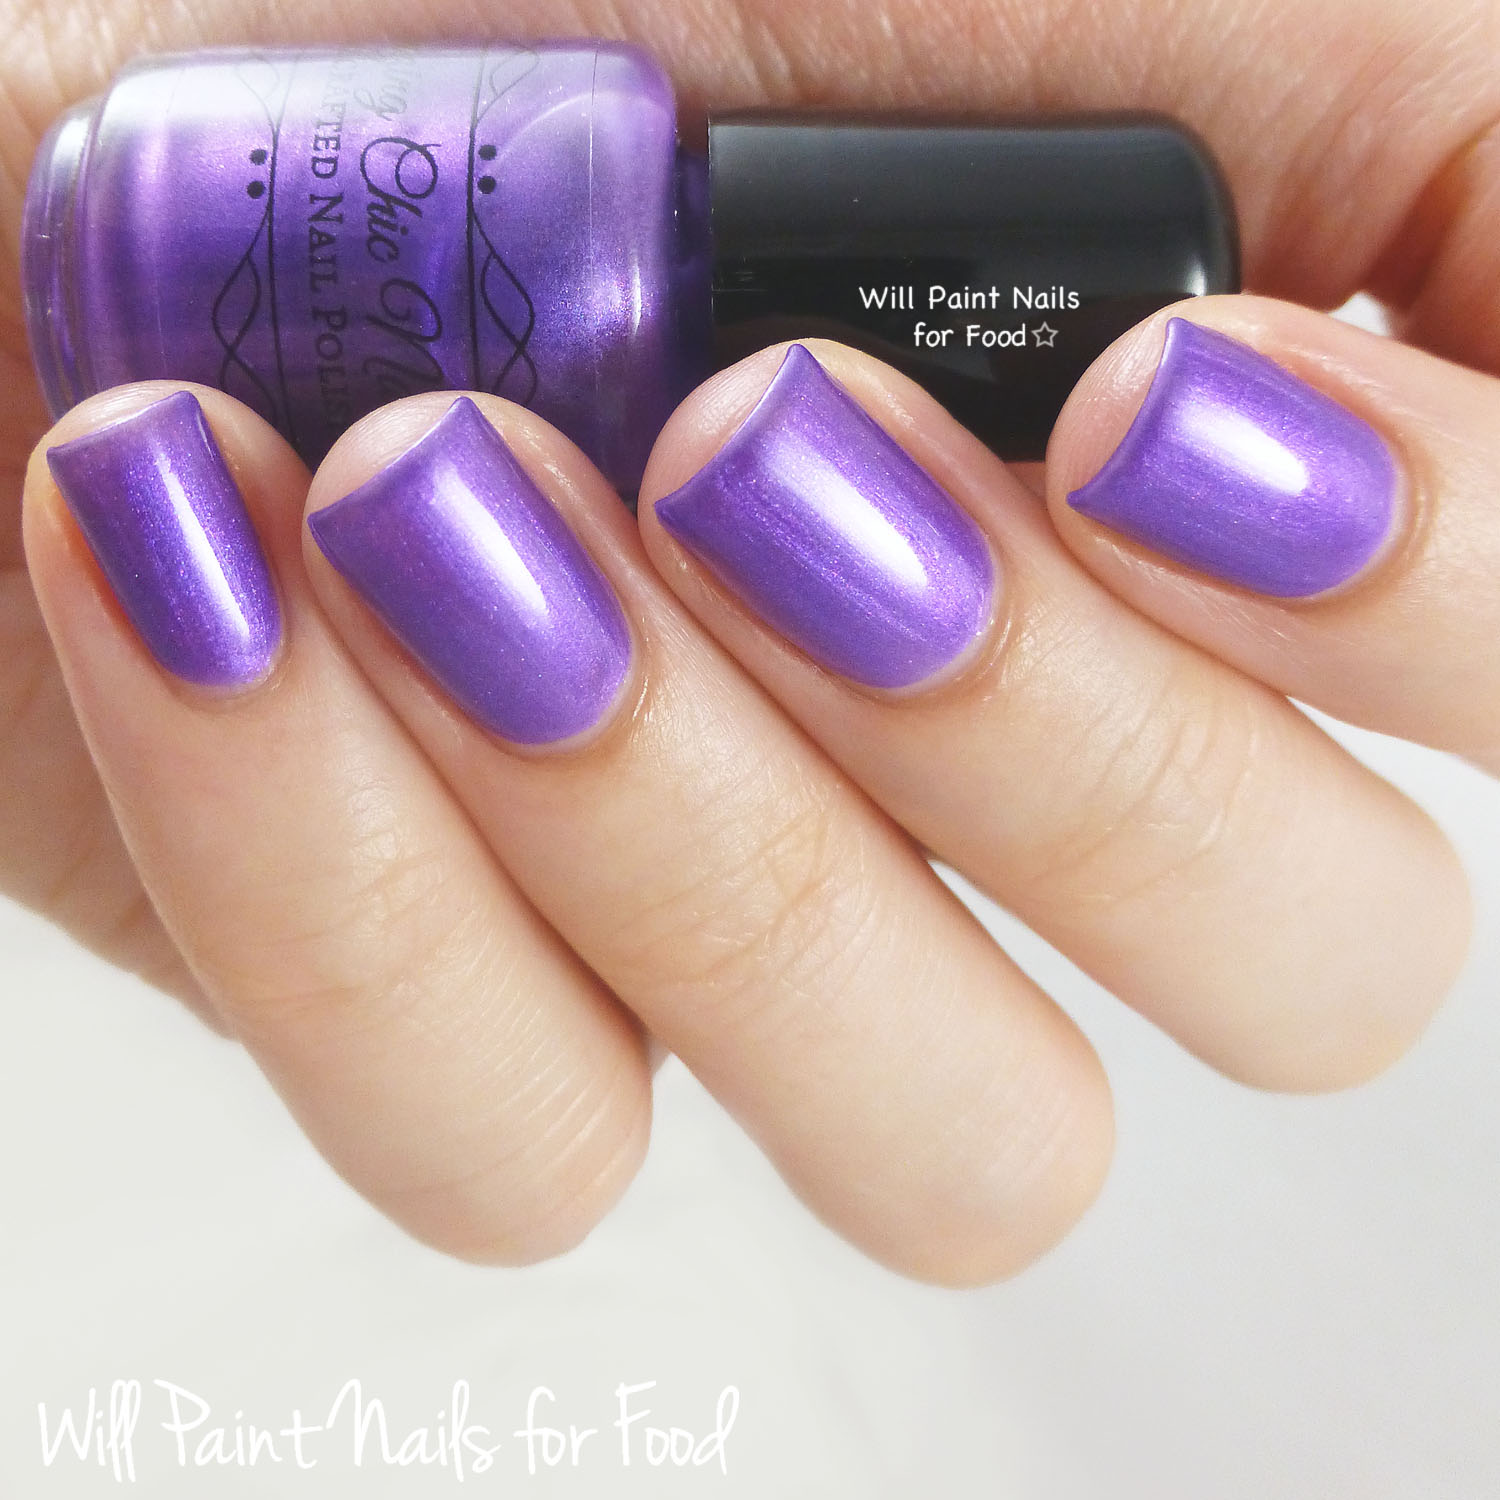 Amazing Chic Nails Buckingham Palace swatch